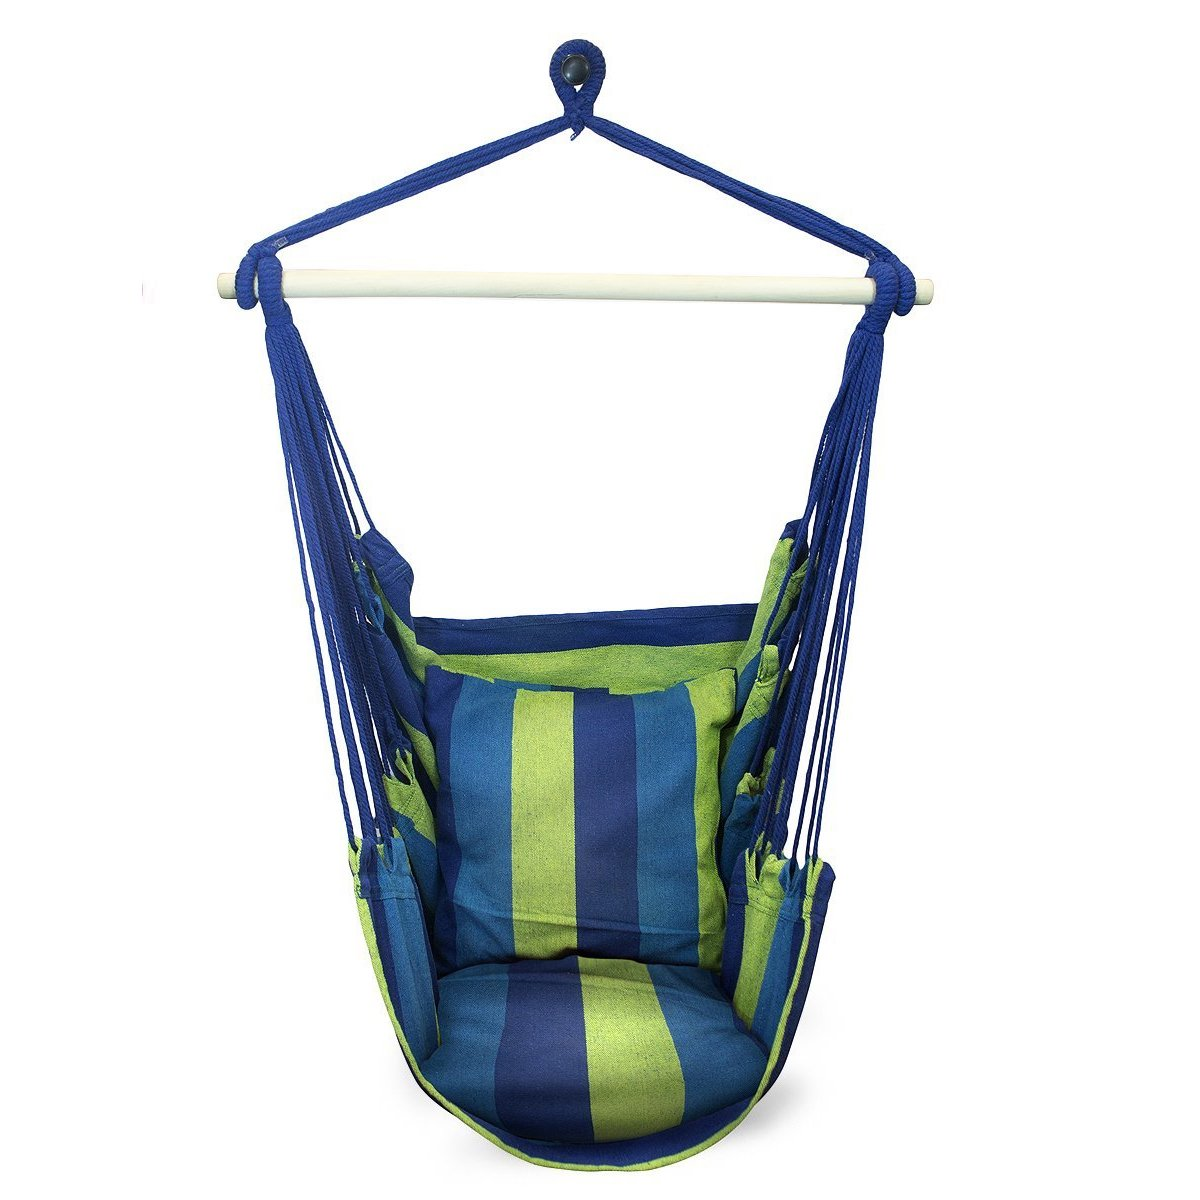 chairs hammock best chill hanging cool chair indoors cheapest cheap to outdoors swing